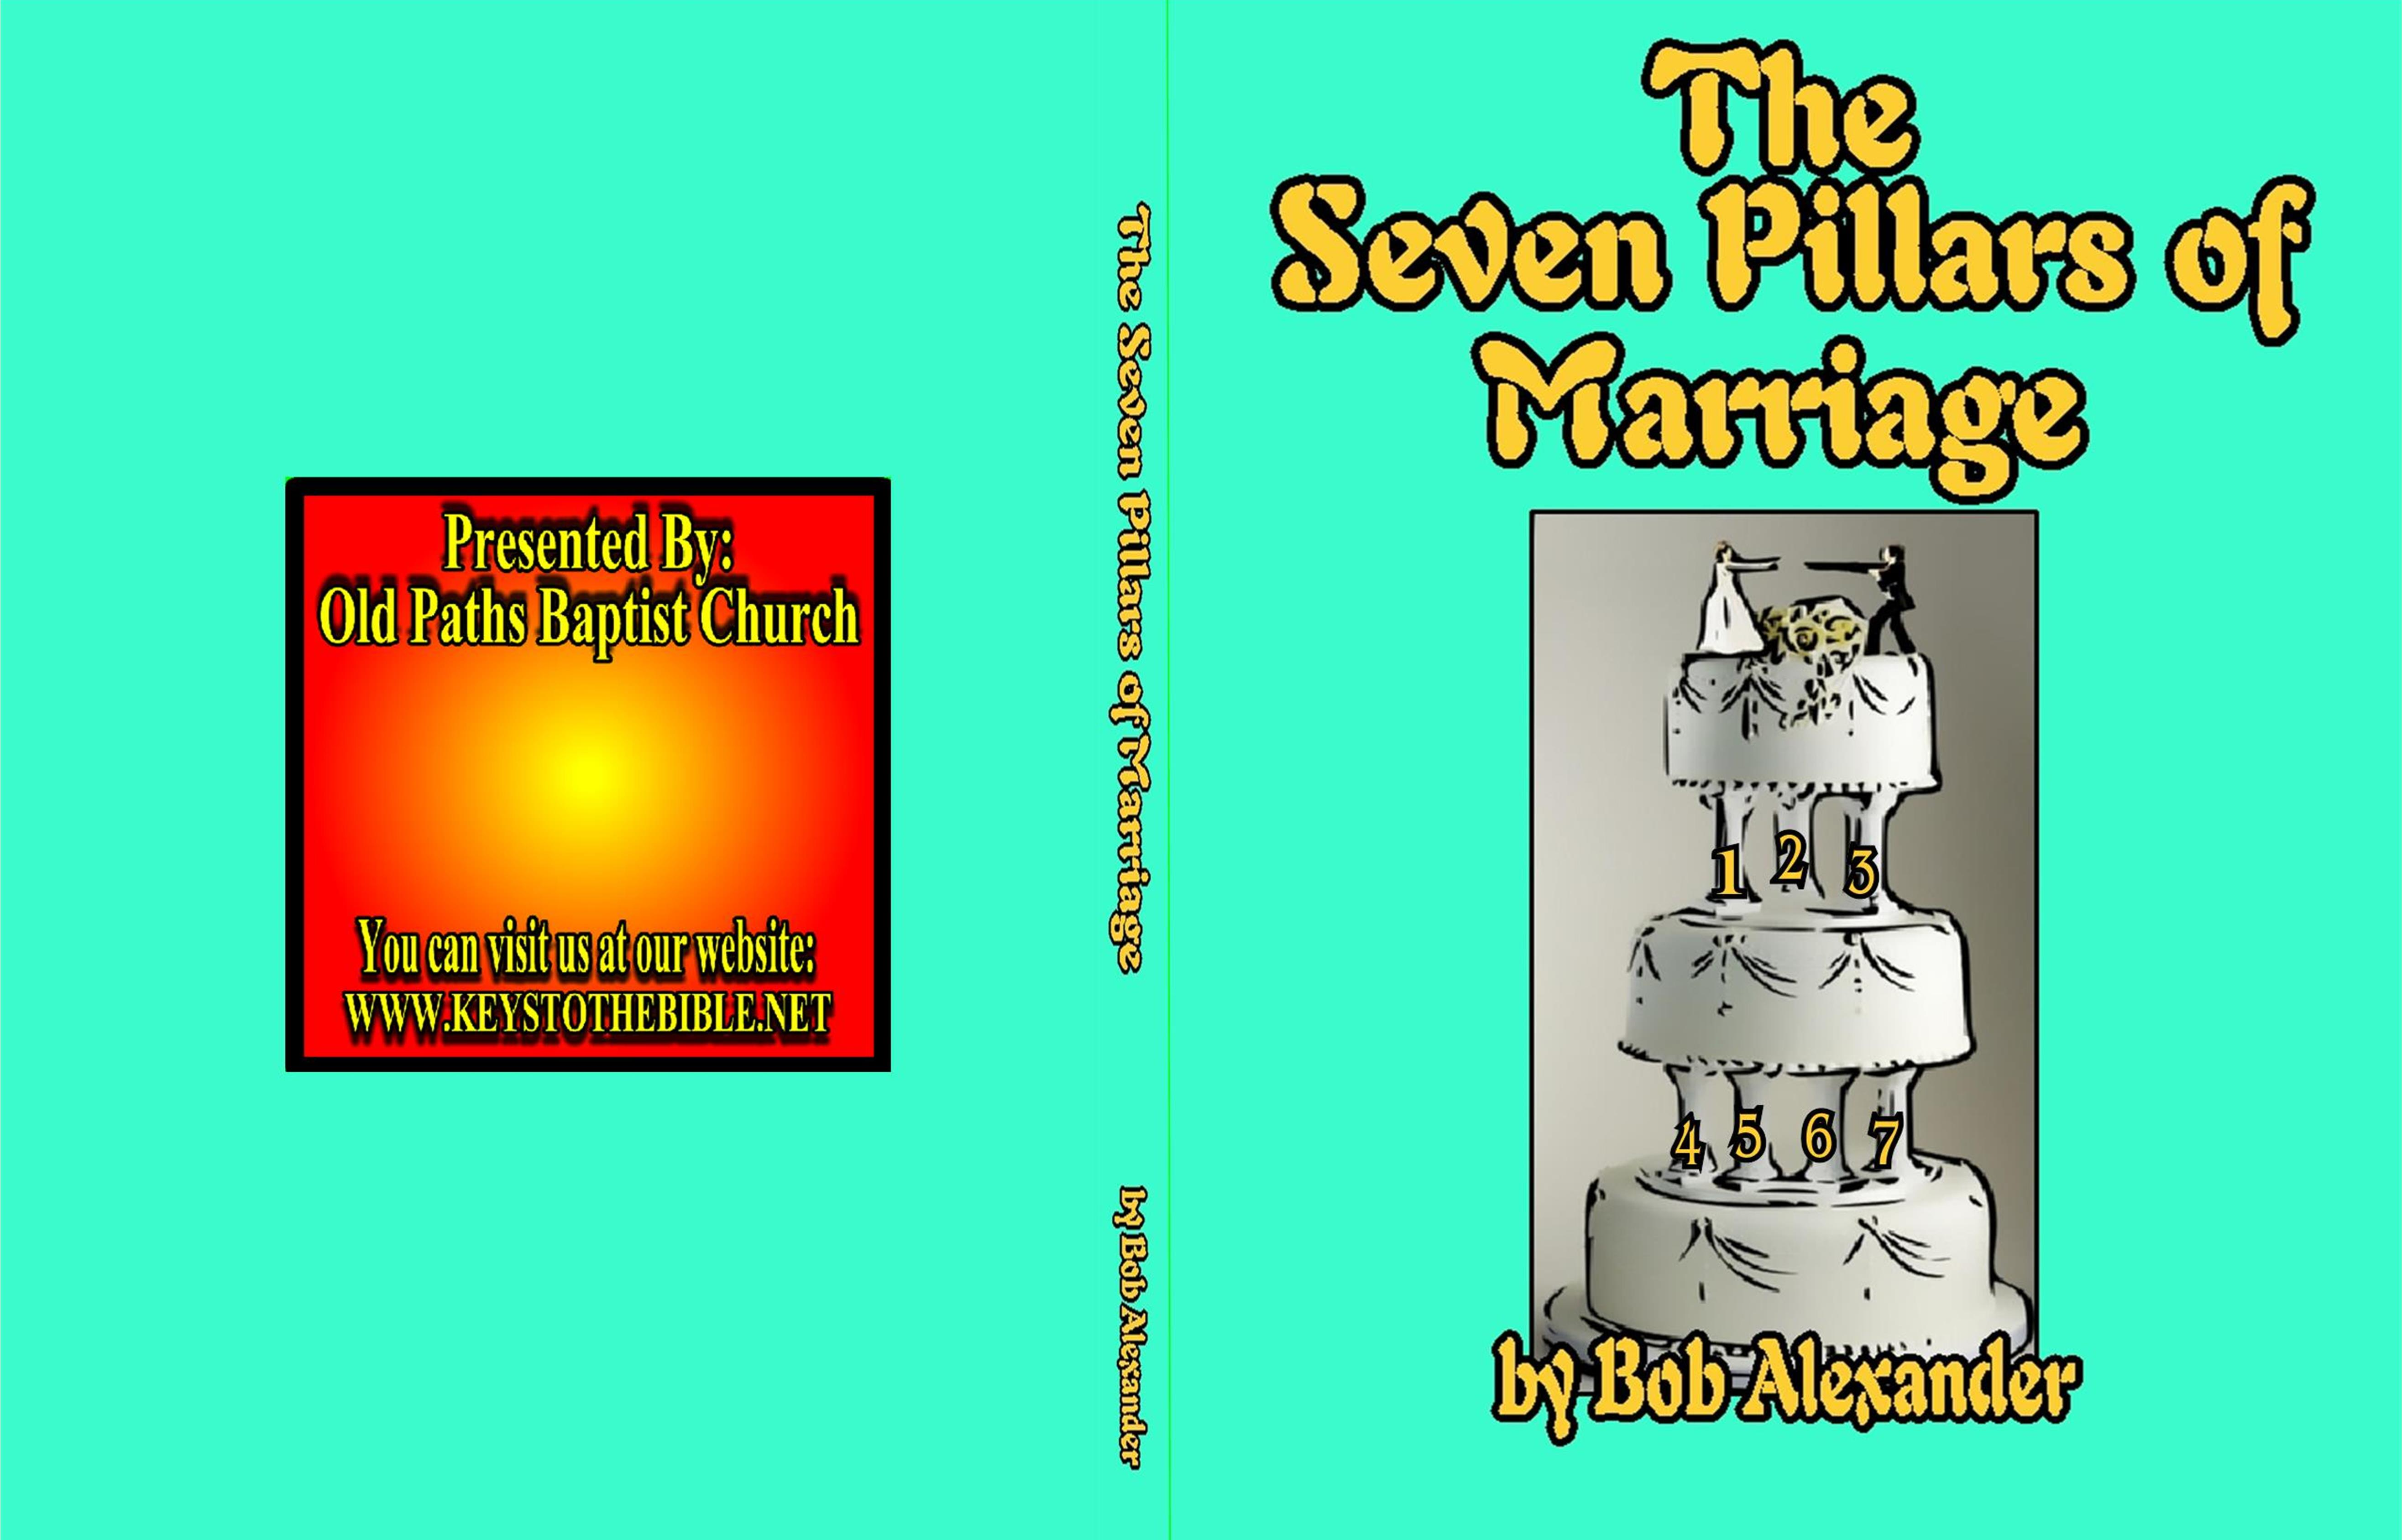 The Seven Pillars of Marriage cover image